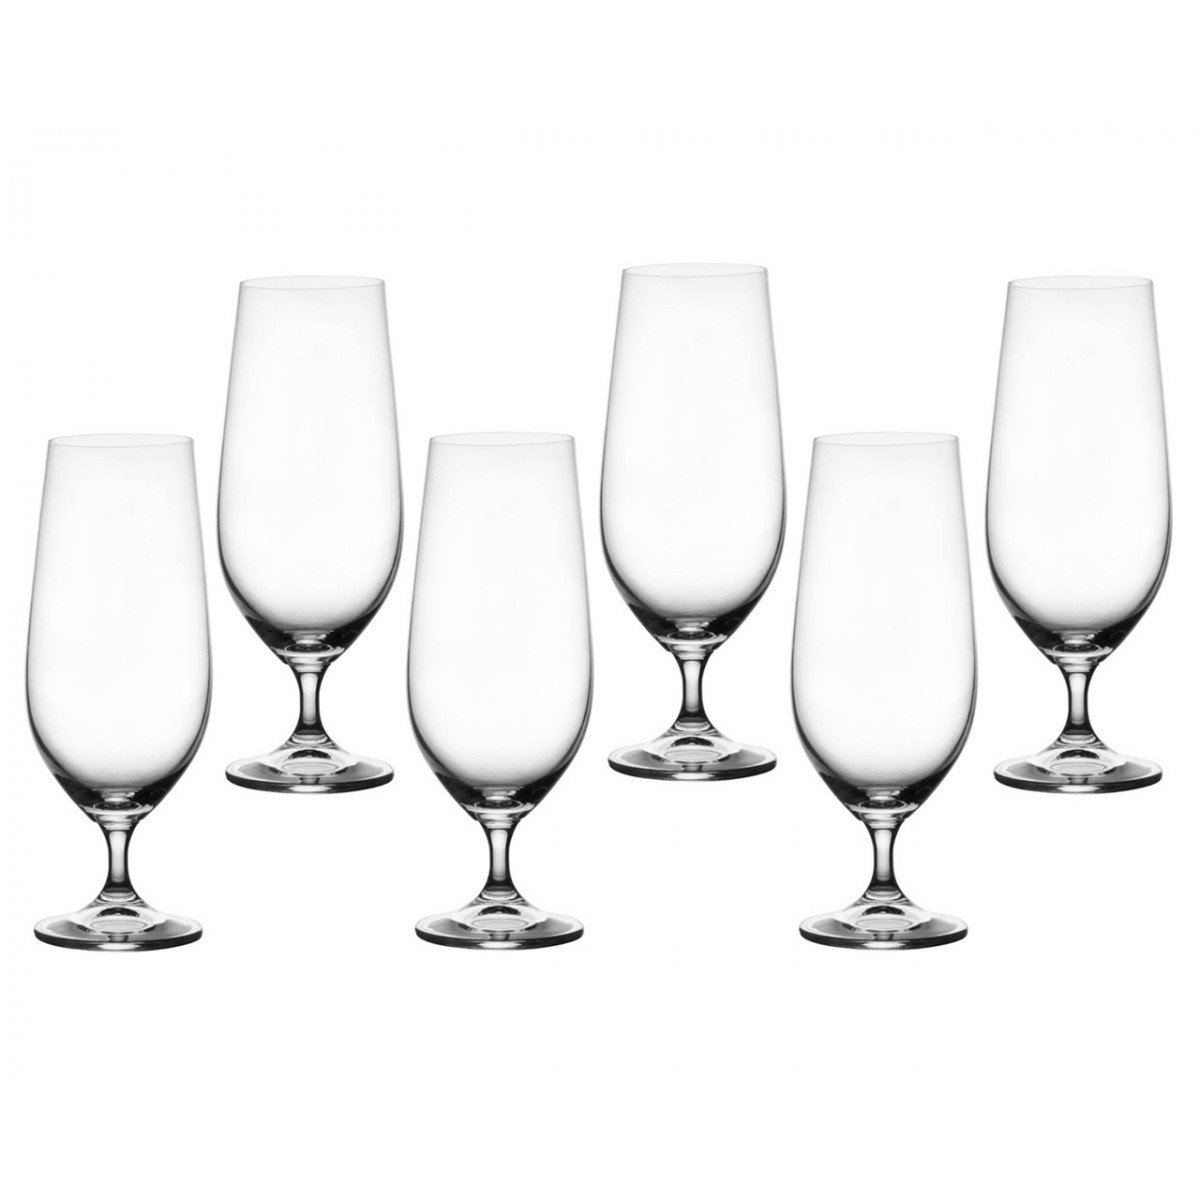 Bohemia Crystal Set of 6 Cecilia Beer Glasses 380ml 13.3oz Clear Glass Wine Ideal Gift for Parties